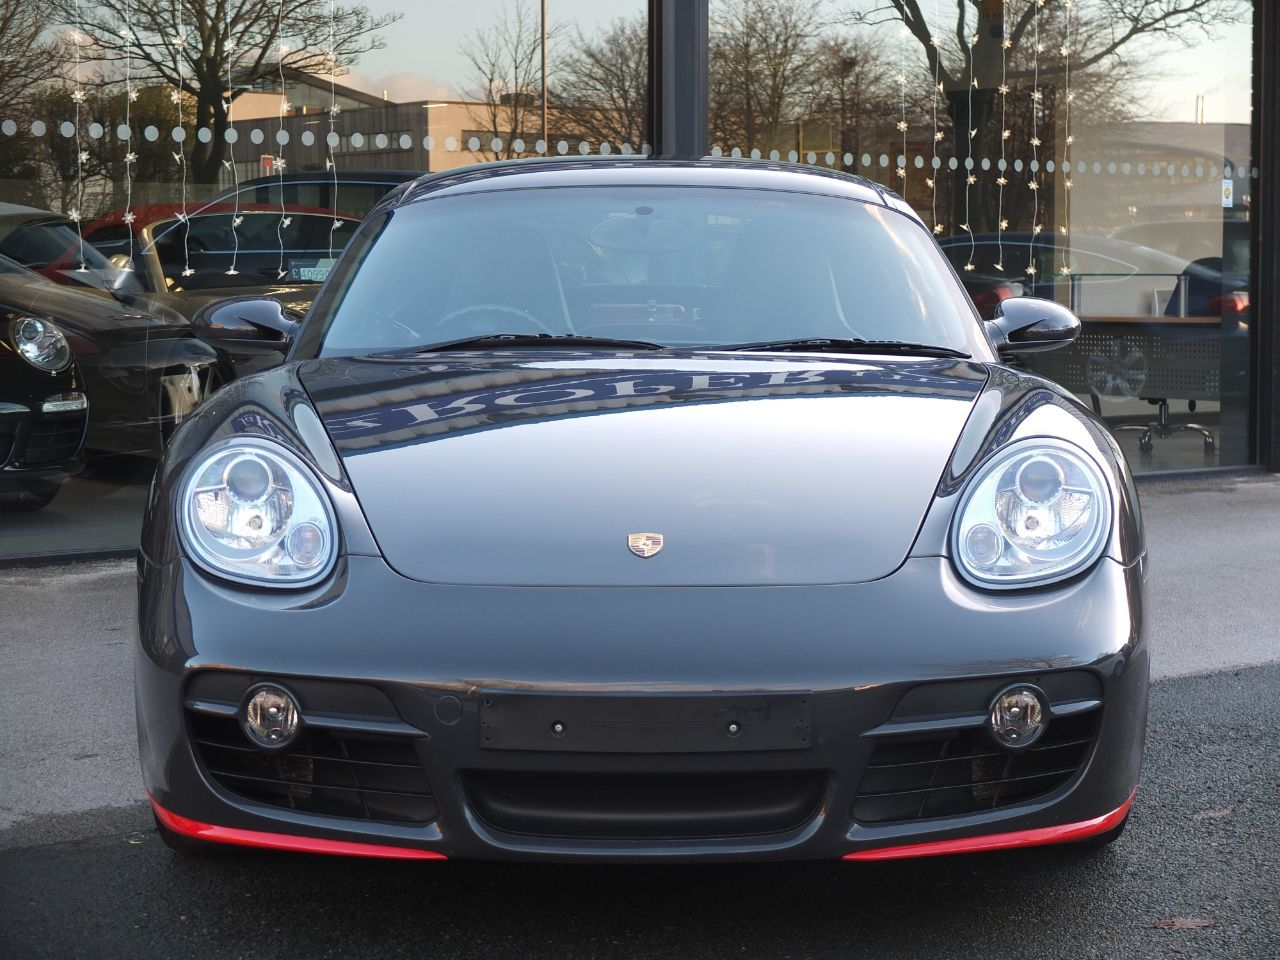 Porsche Cayman 3.4 S (RS Paint Finish) Coupe Petrol Grey Black (Gt3 Rs Colour) With Guards Red Detail